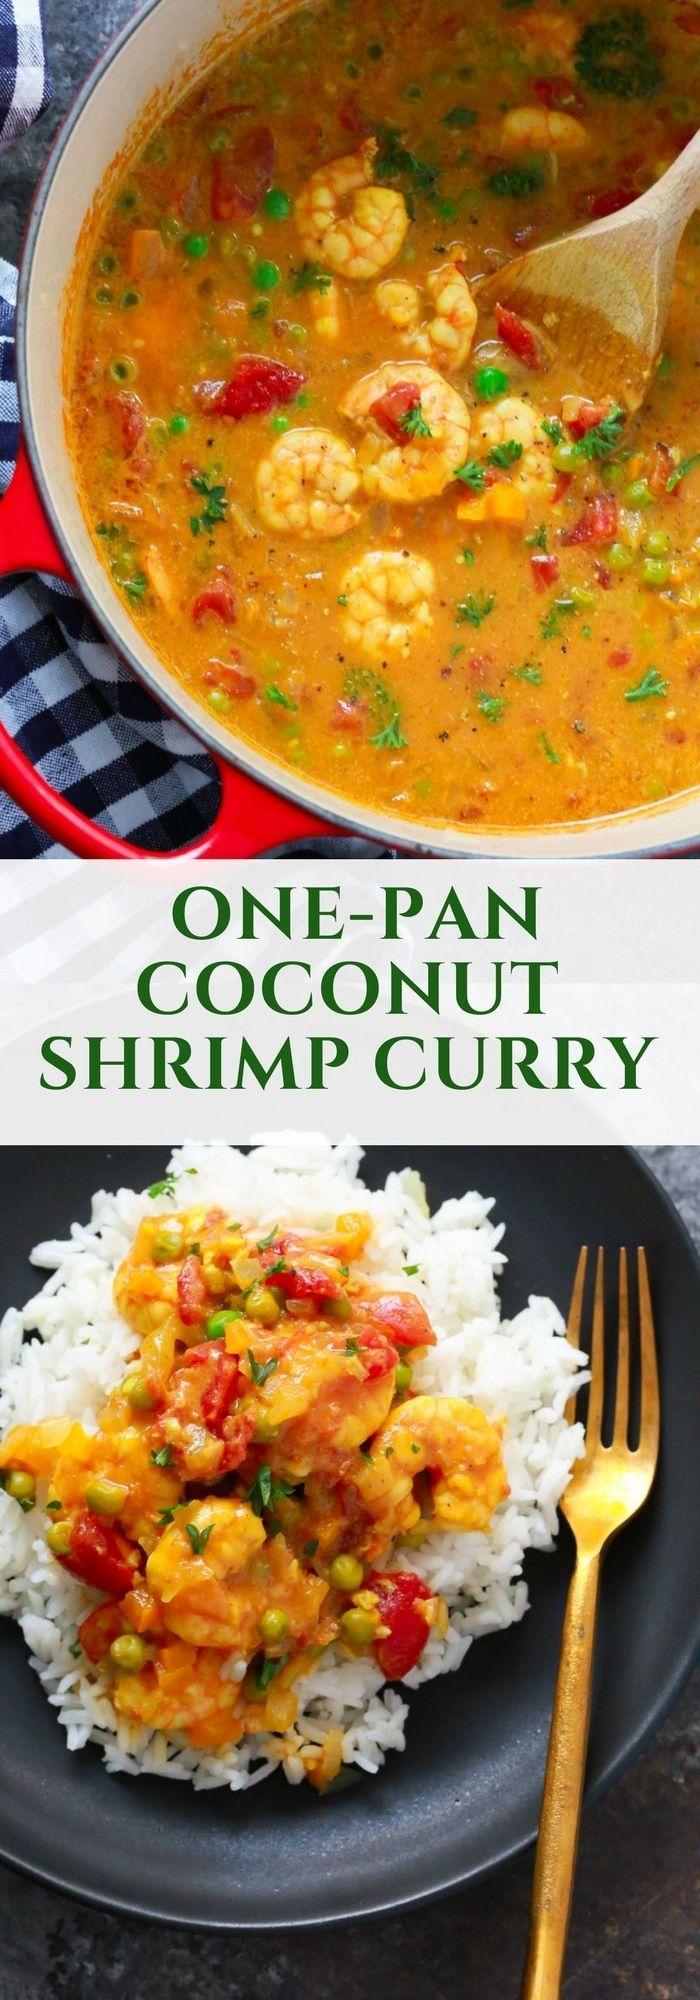 One-Pan Cocoonut Shrimp Curry - It's time to enjoy comforting food with this easy and quick to make One-pan Coconut Shrimp Curry. It's made with onions, tomatoes, coconut milk, curry and shrimp and it's ready in less than 20 minutes.